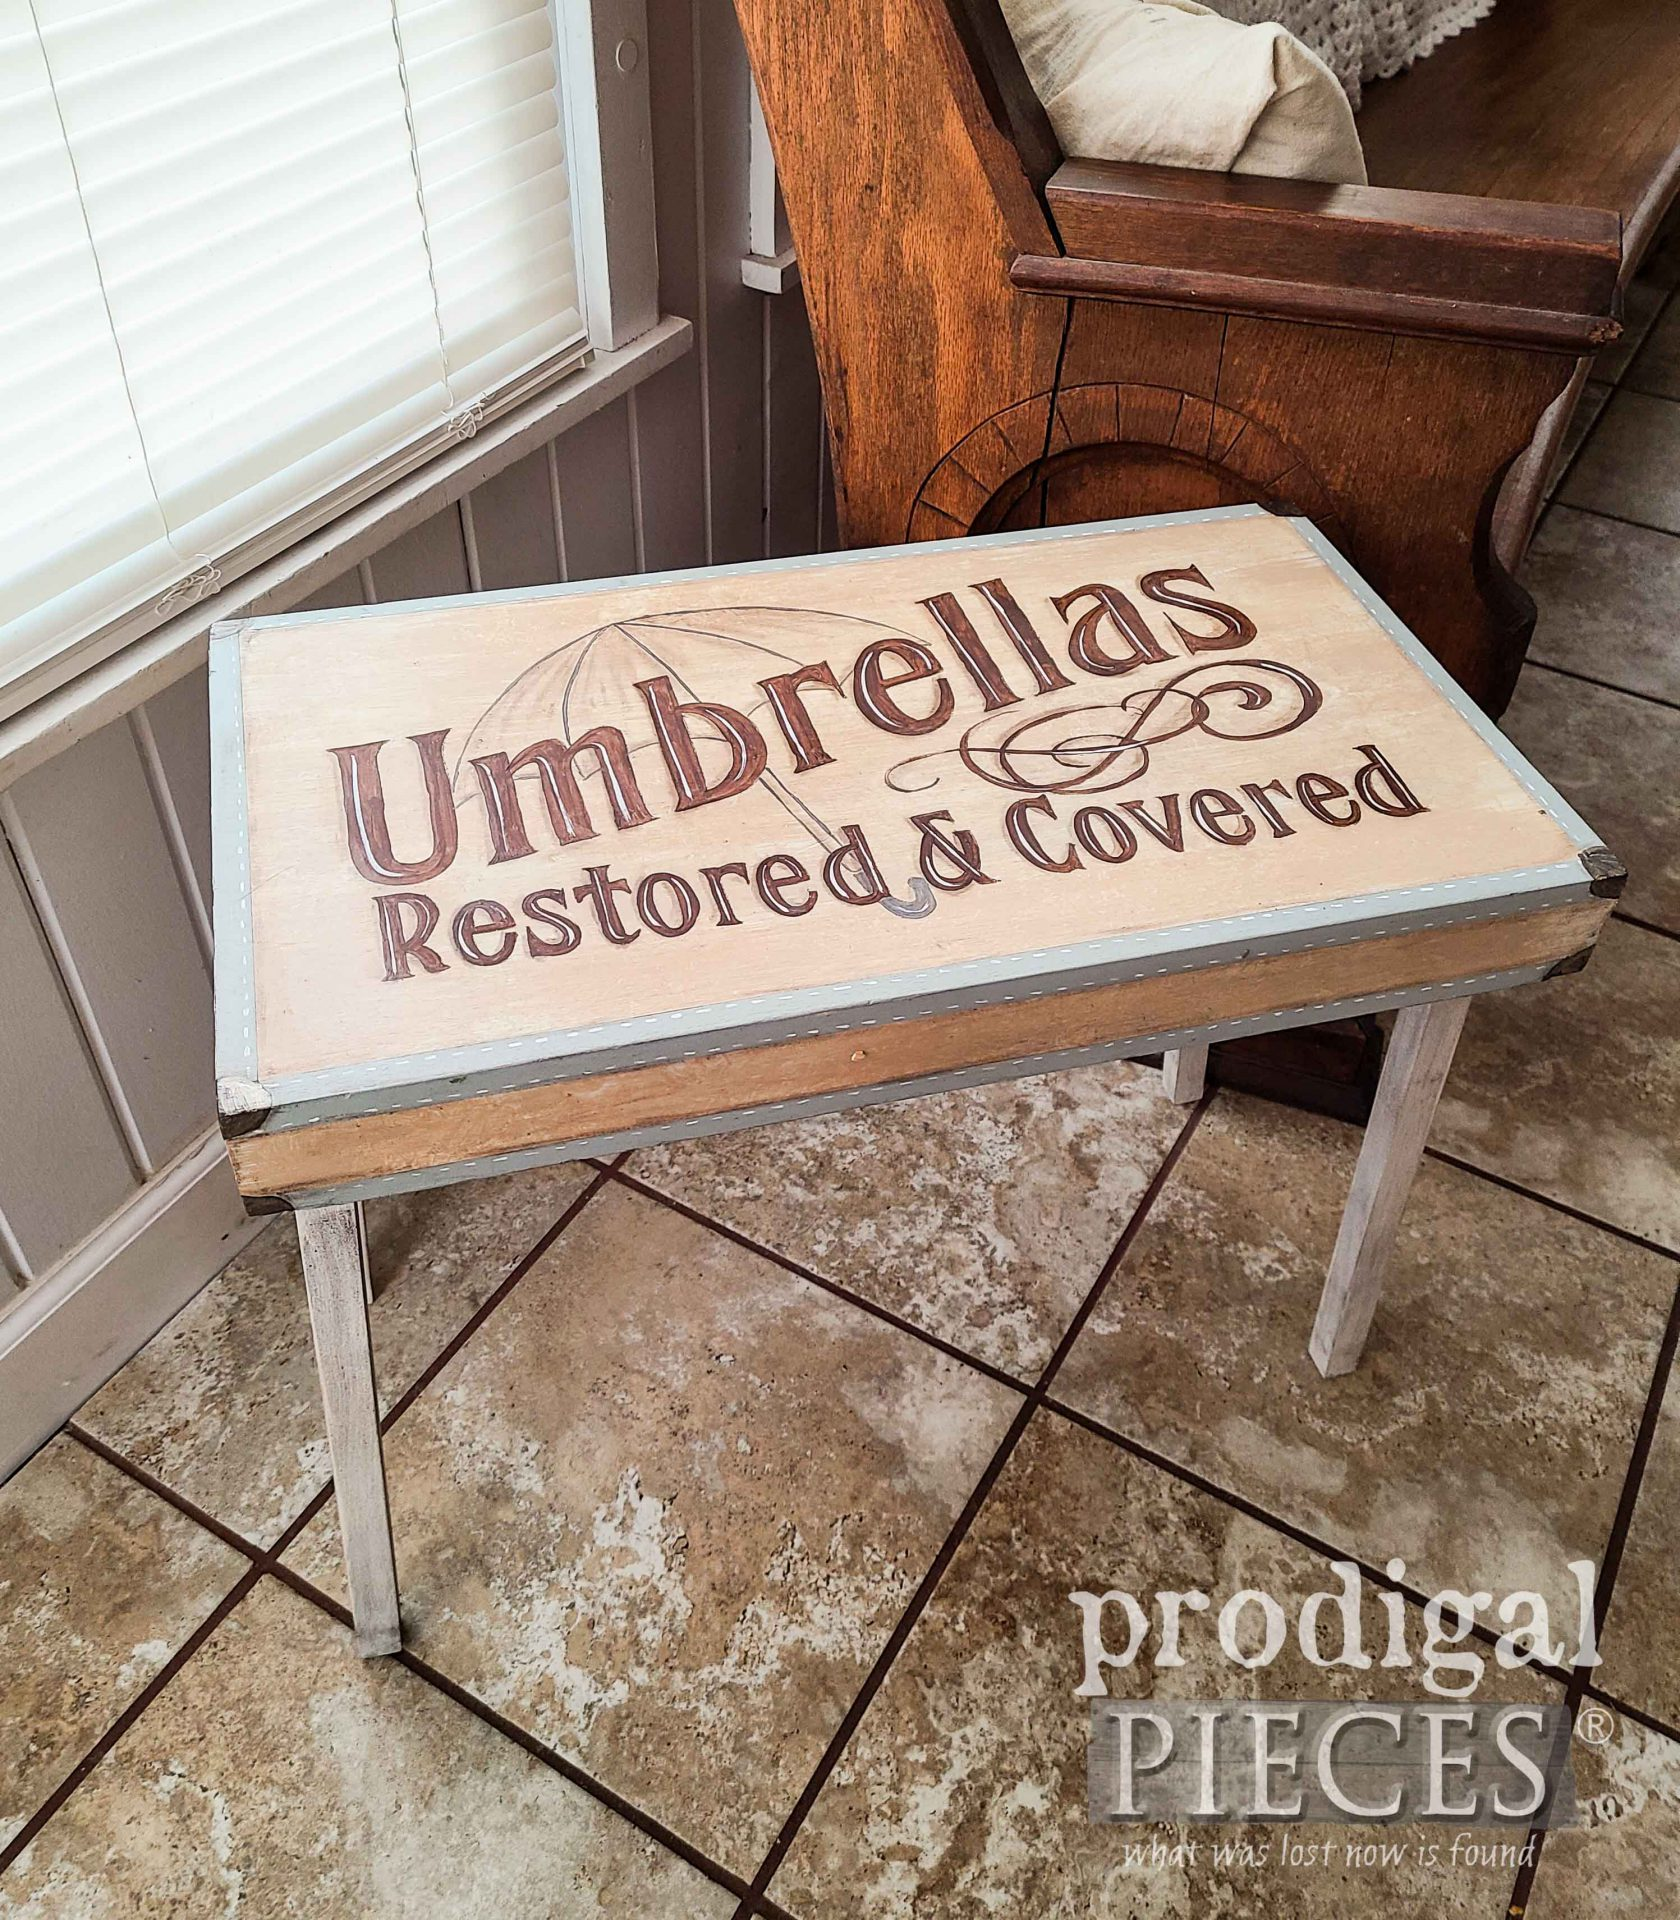 Vintage Folding Table Top with Hand-Painted Typography Art by Larissa of Prodigal Pieces | prodigalpieces.com #prodigalpieces #farmhouse #furniture #home #homedecor